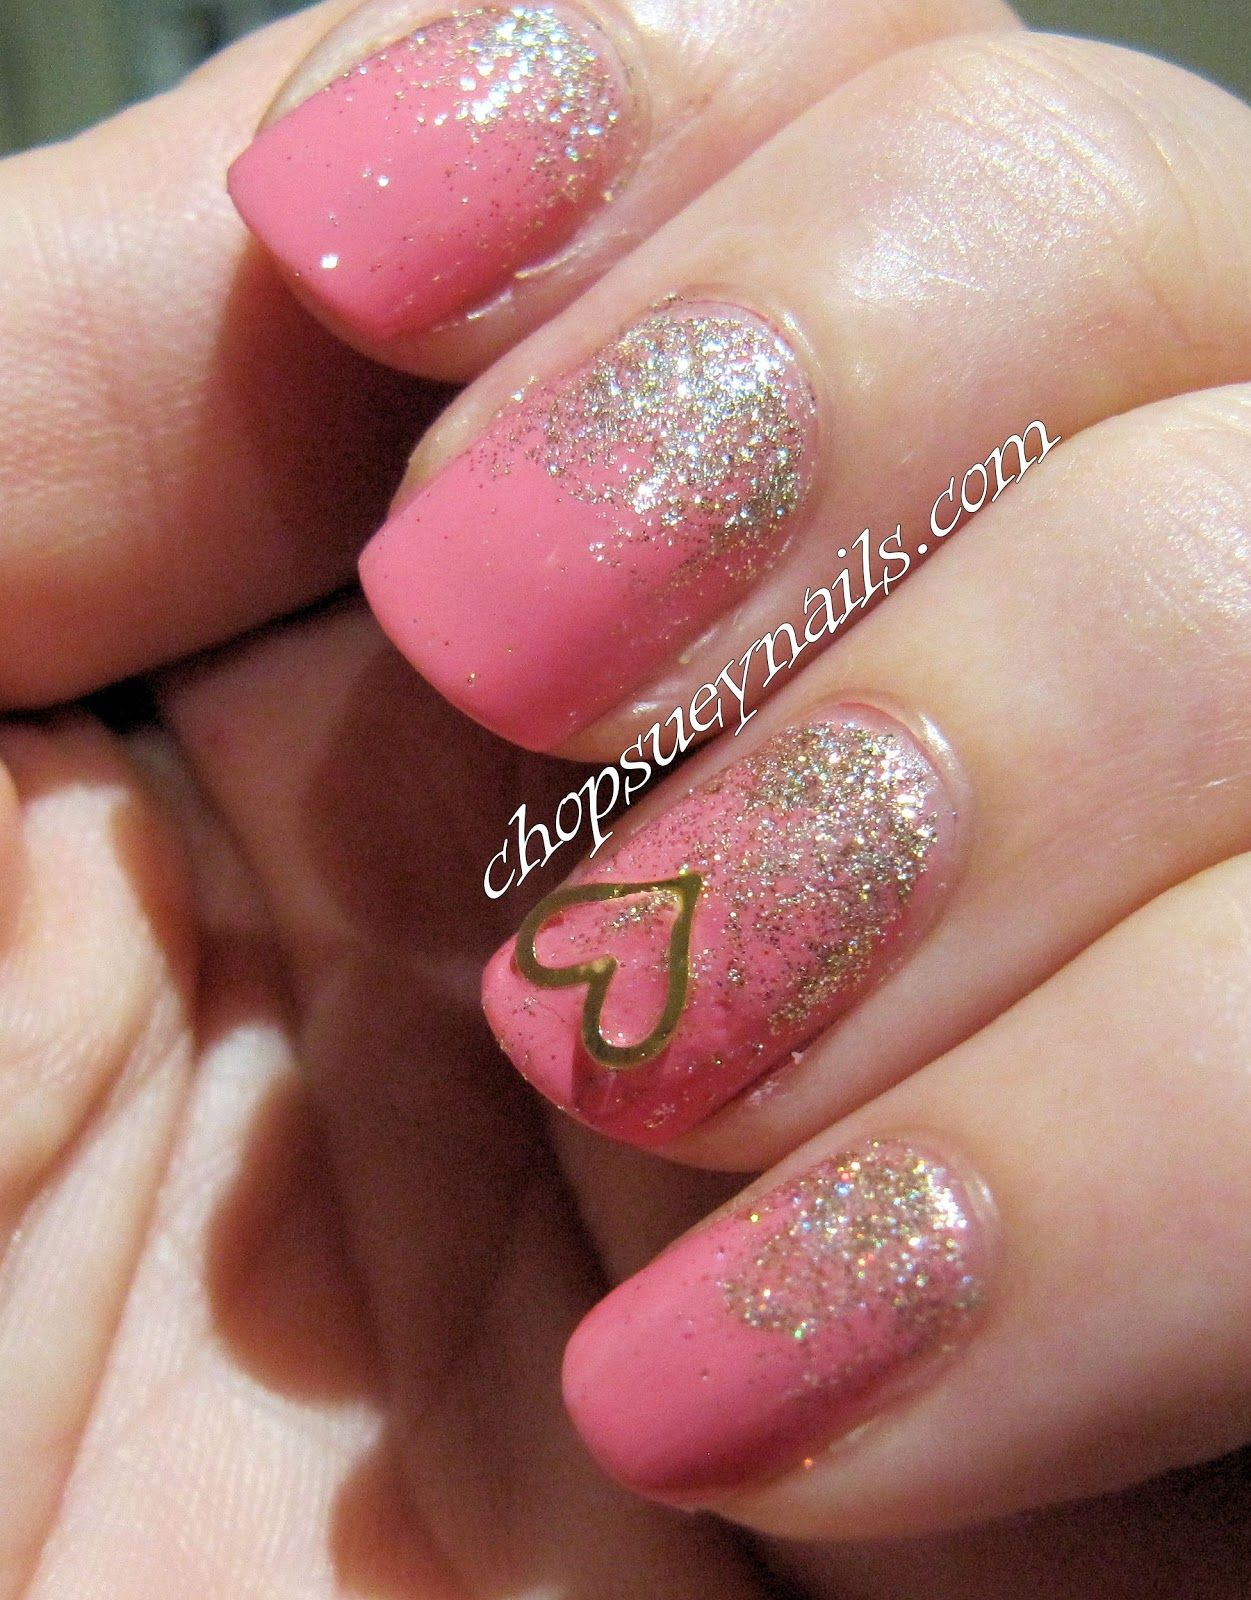 Chanel May with China Glaze I'm Not Lion Reverse Glitter Gradient Nail Art